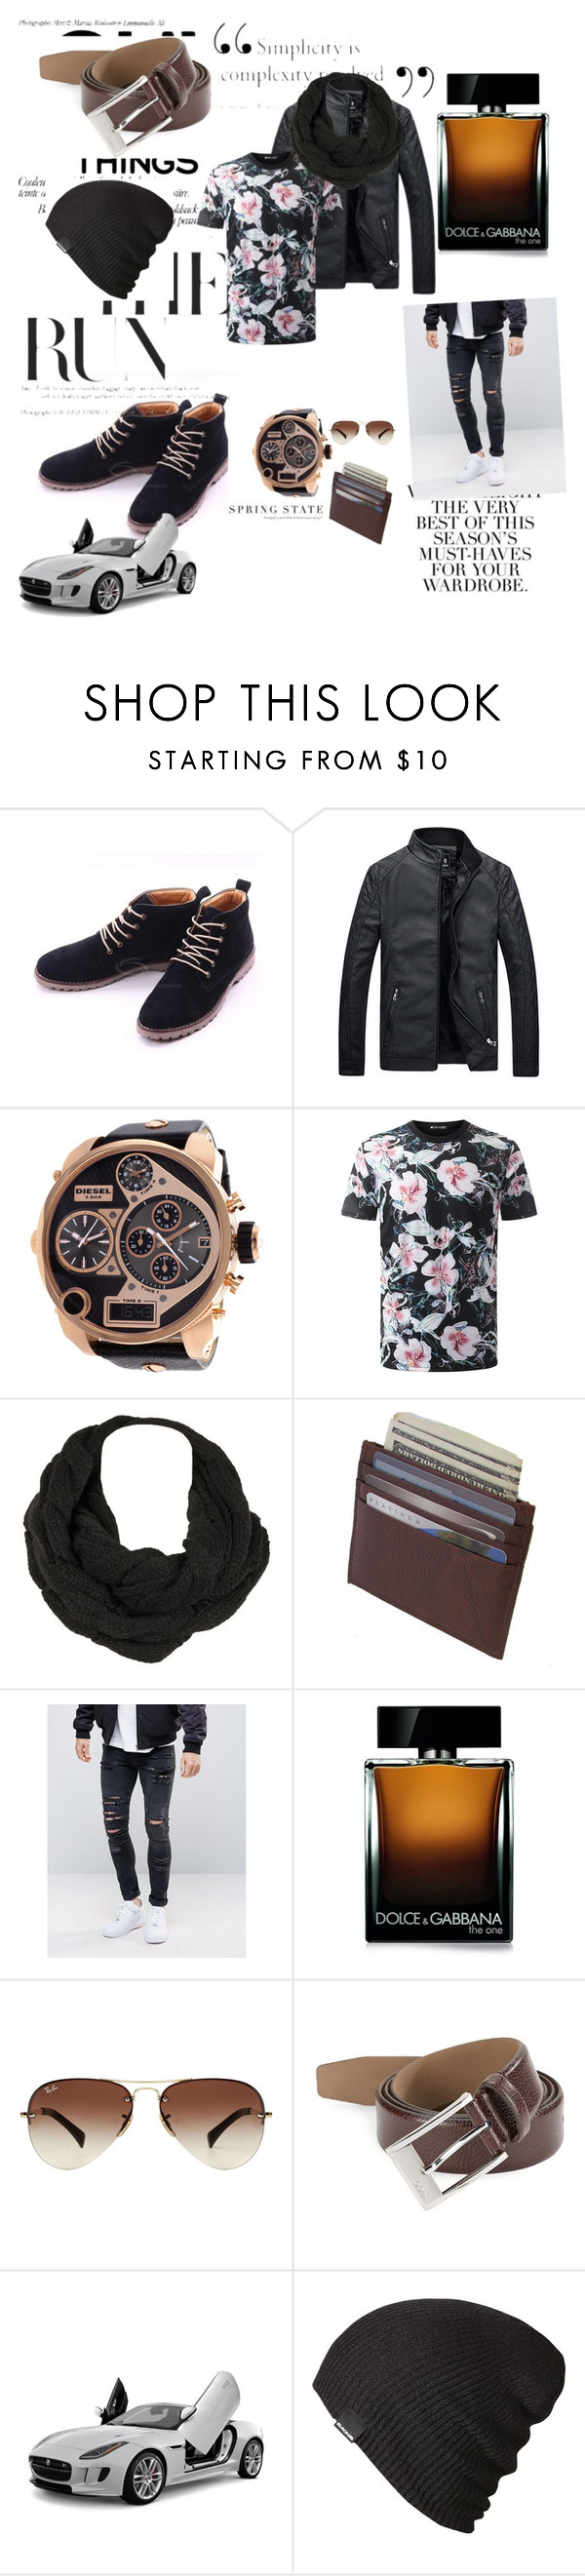 """""""Untitled #18"""" by belkisa-kahrimanovic ❤ liked on Polyvore featuring Folio, Diesel, ASOS, Dolce&Gabbana, Ray-Ban, HUGO, Dakine, men's fashion and menswear"""